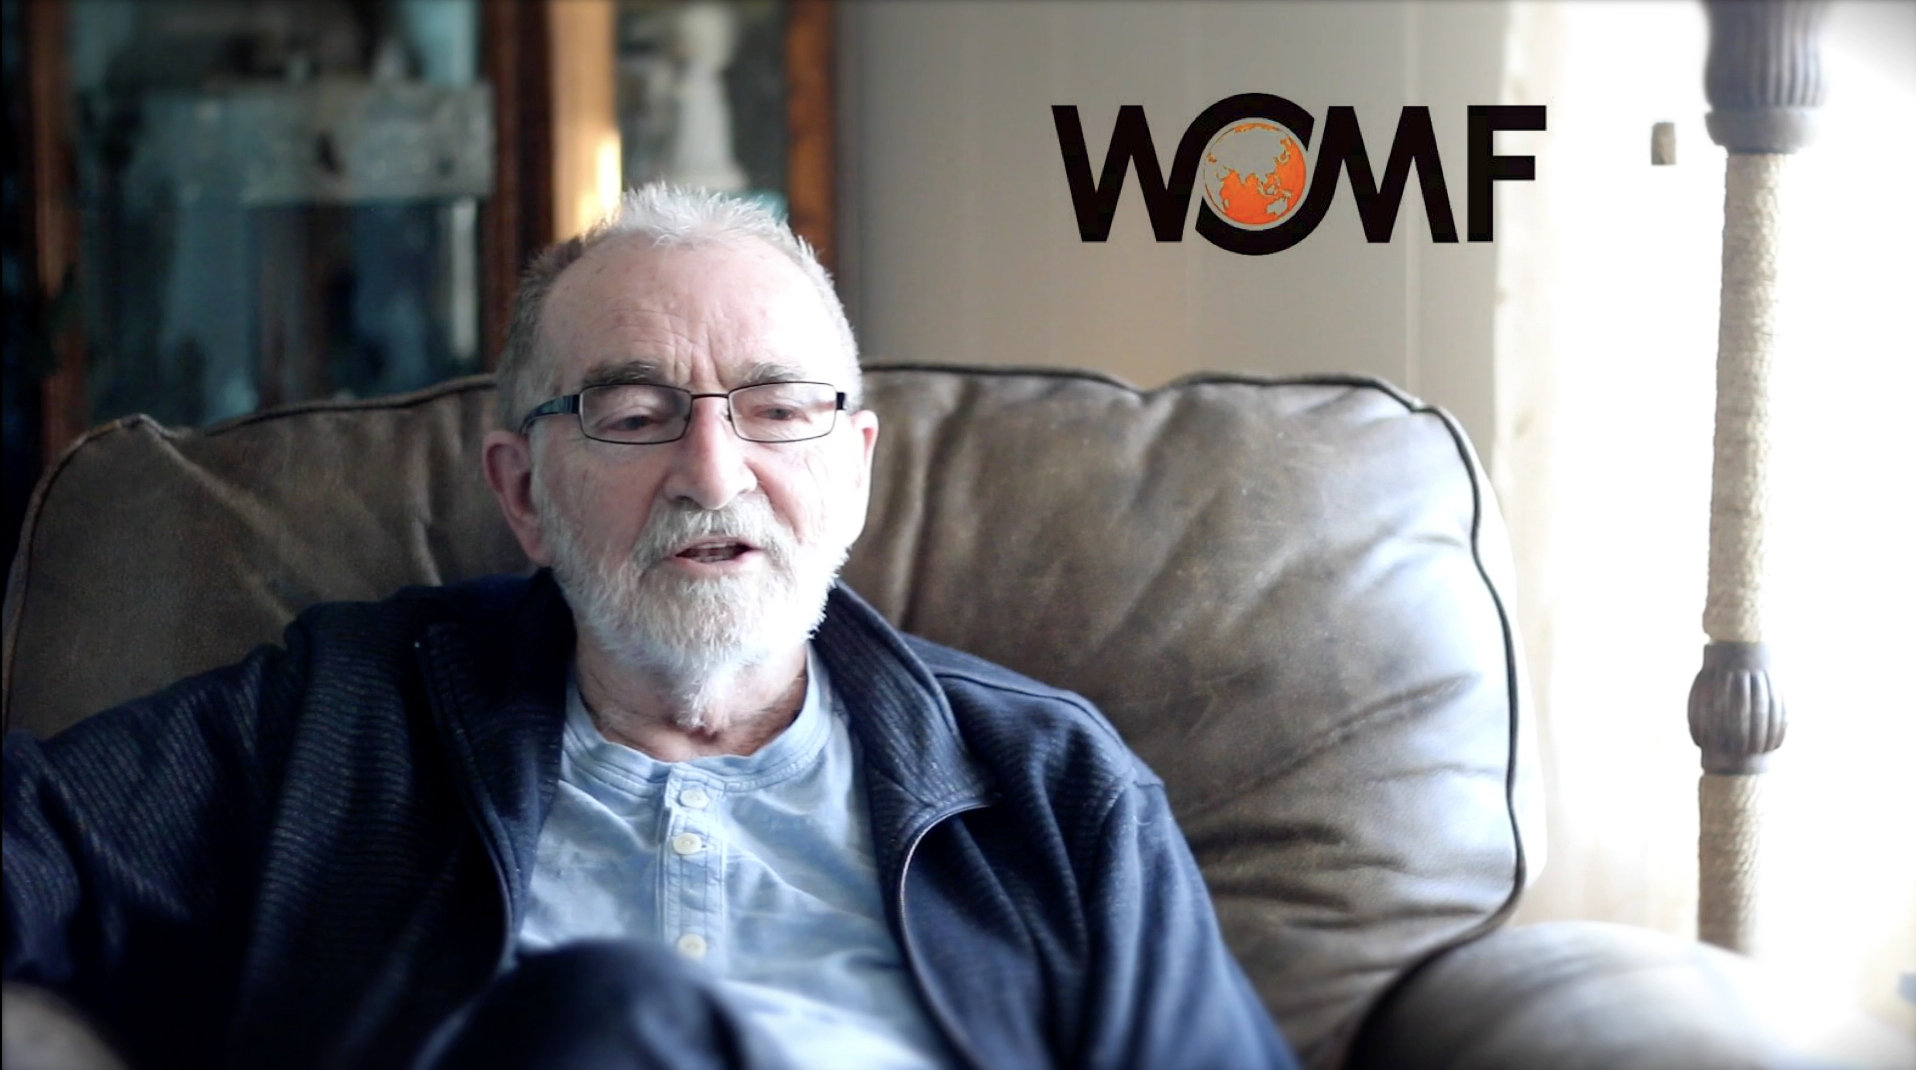 WOMF – Founder Interview